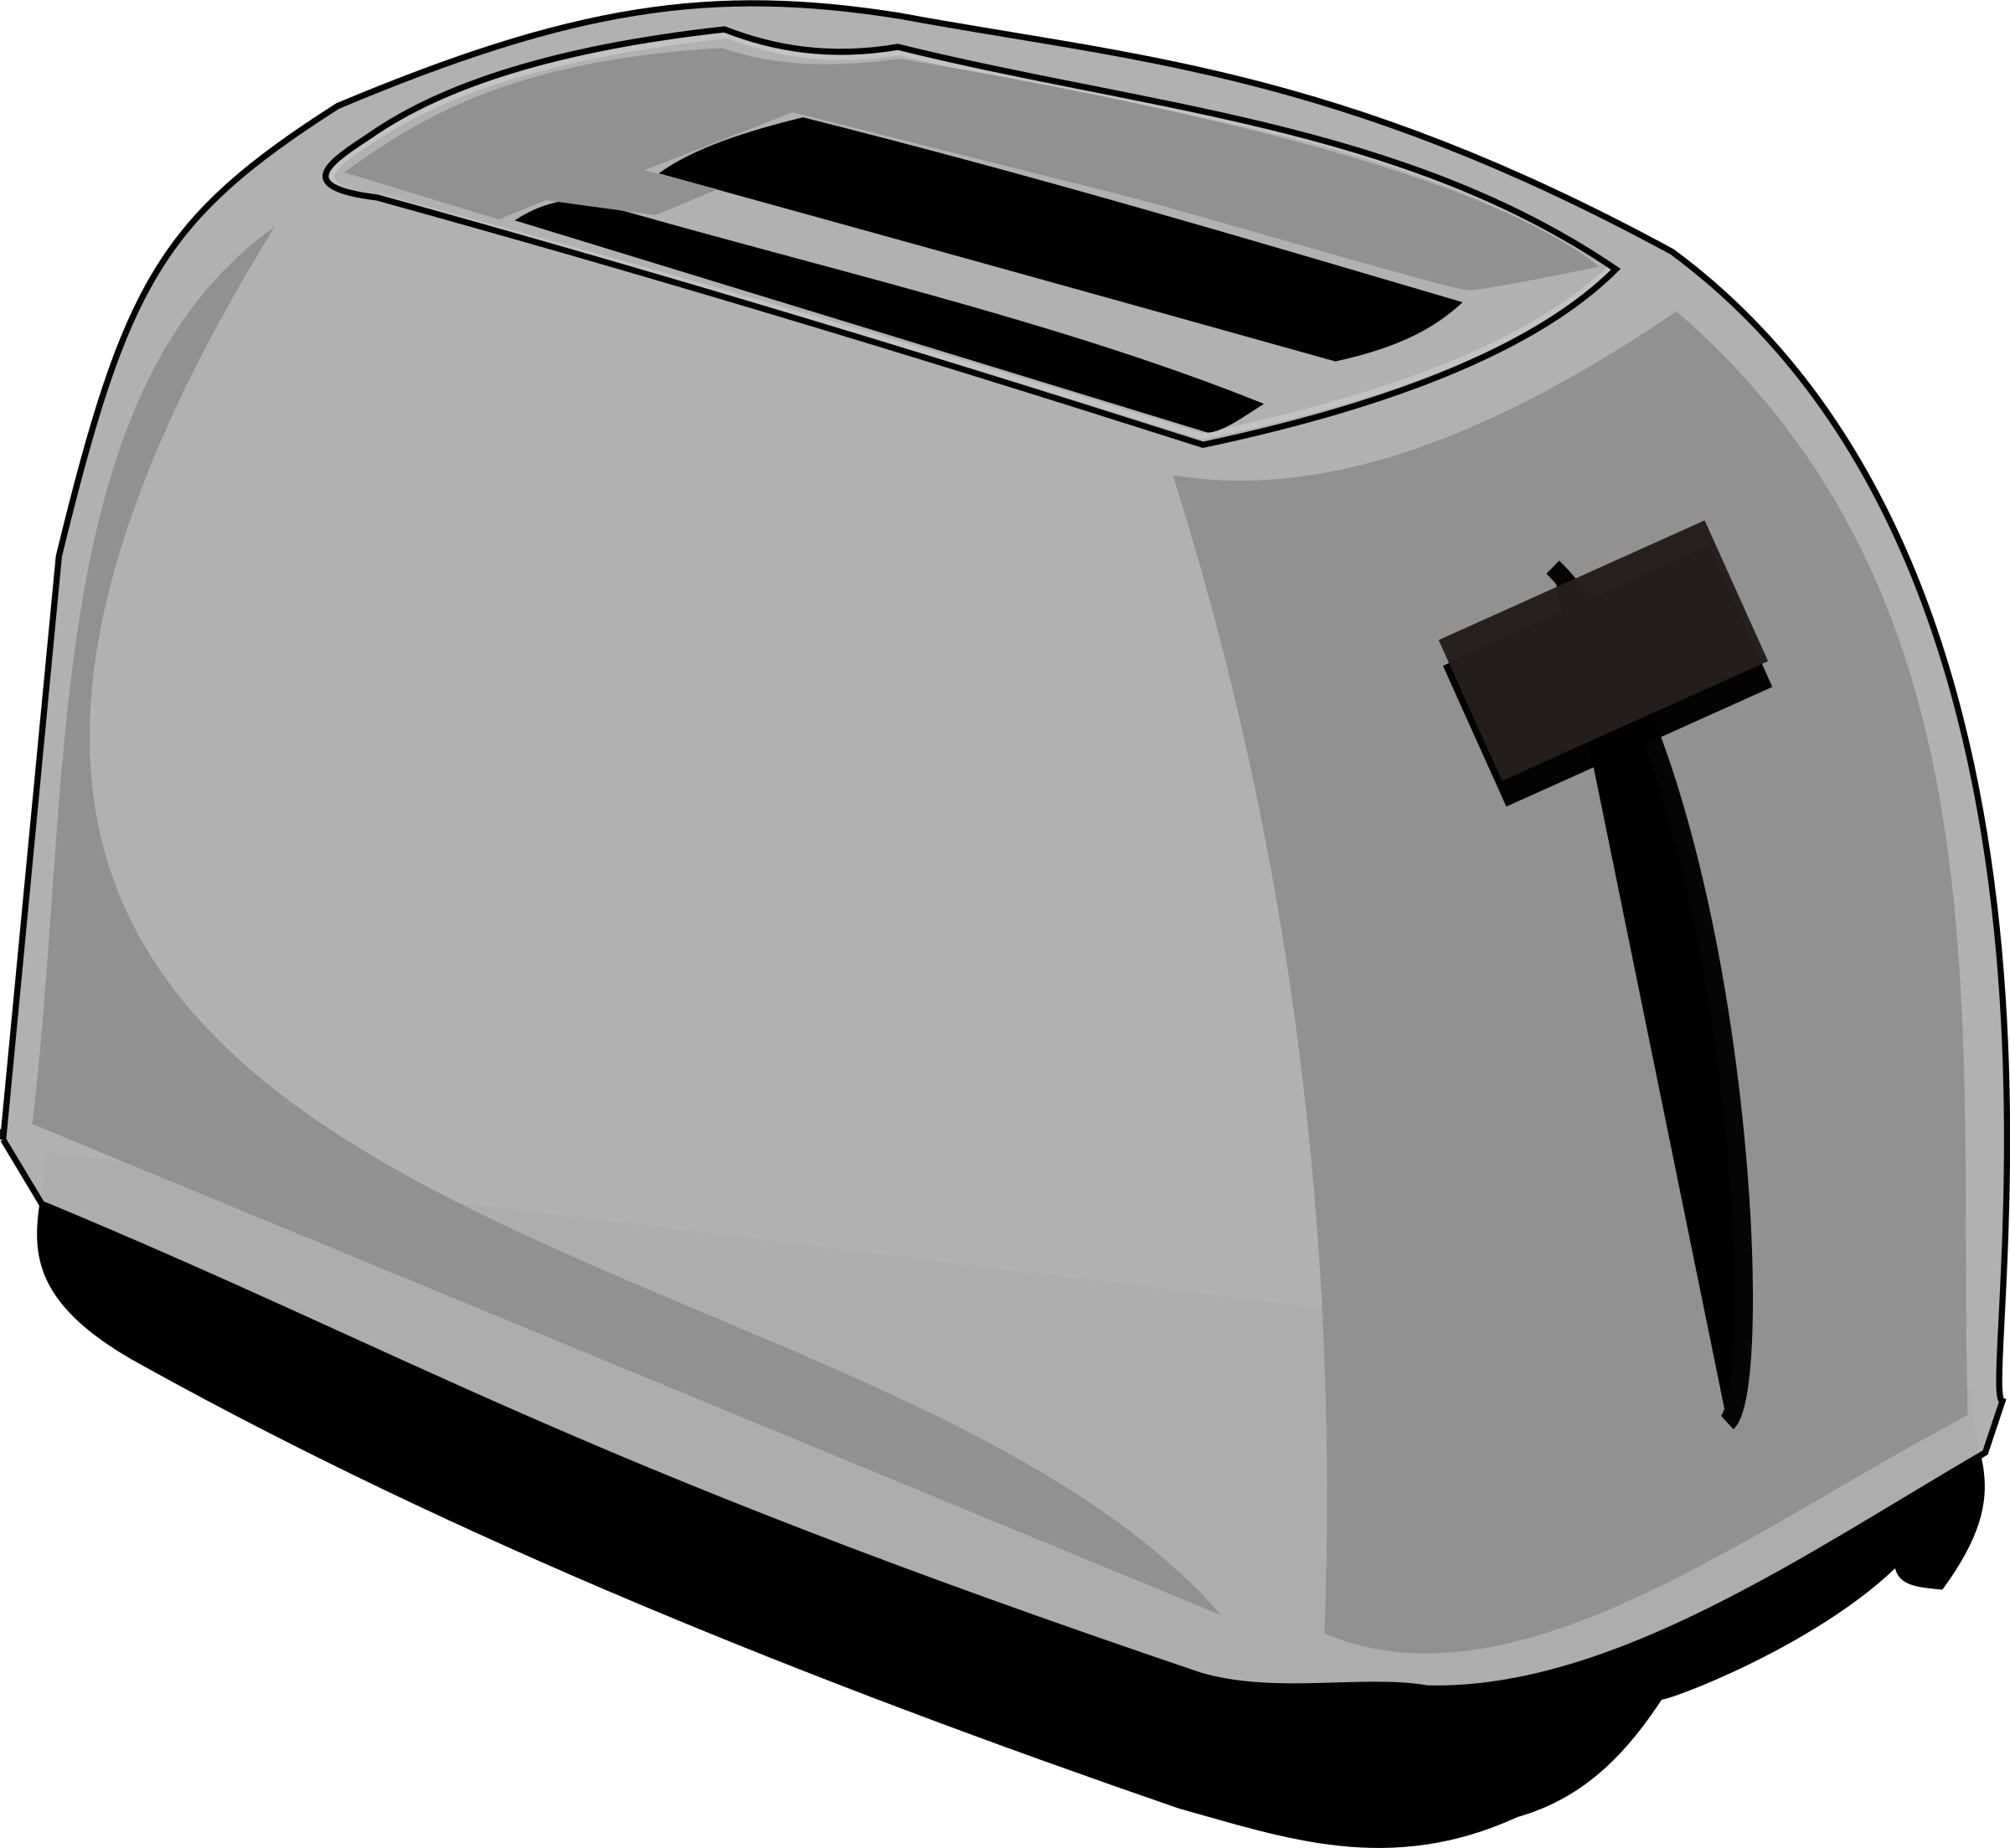 graphic black and white stock Png image purepng free. Toaster transparent